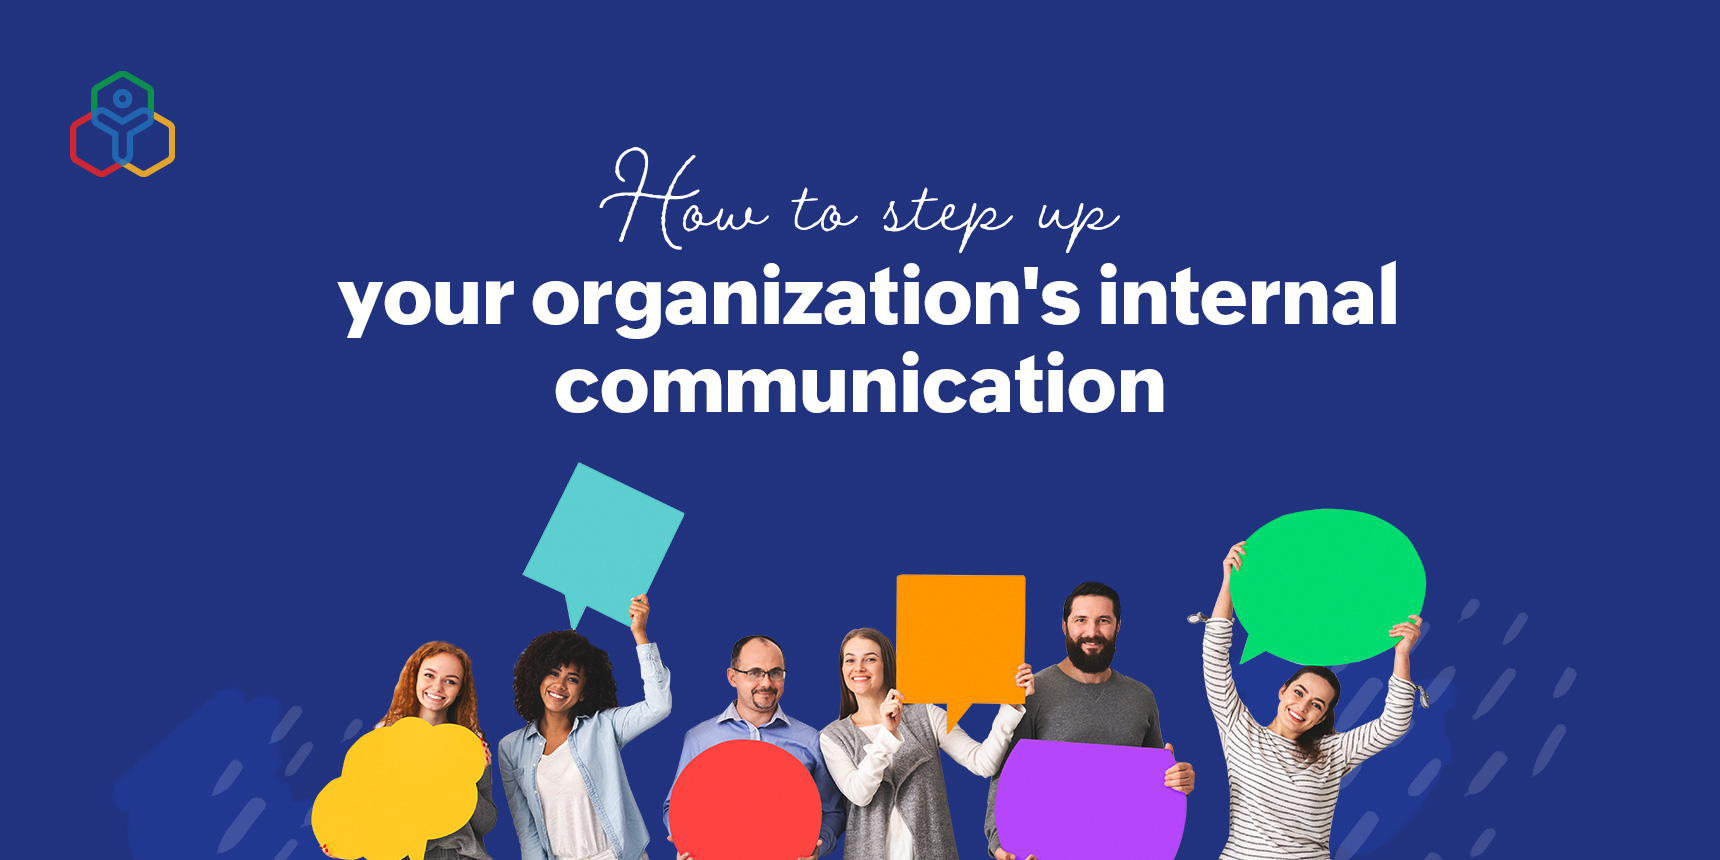 Improving internal communication at organization